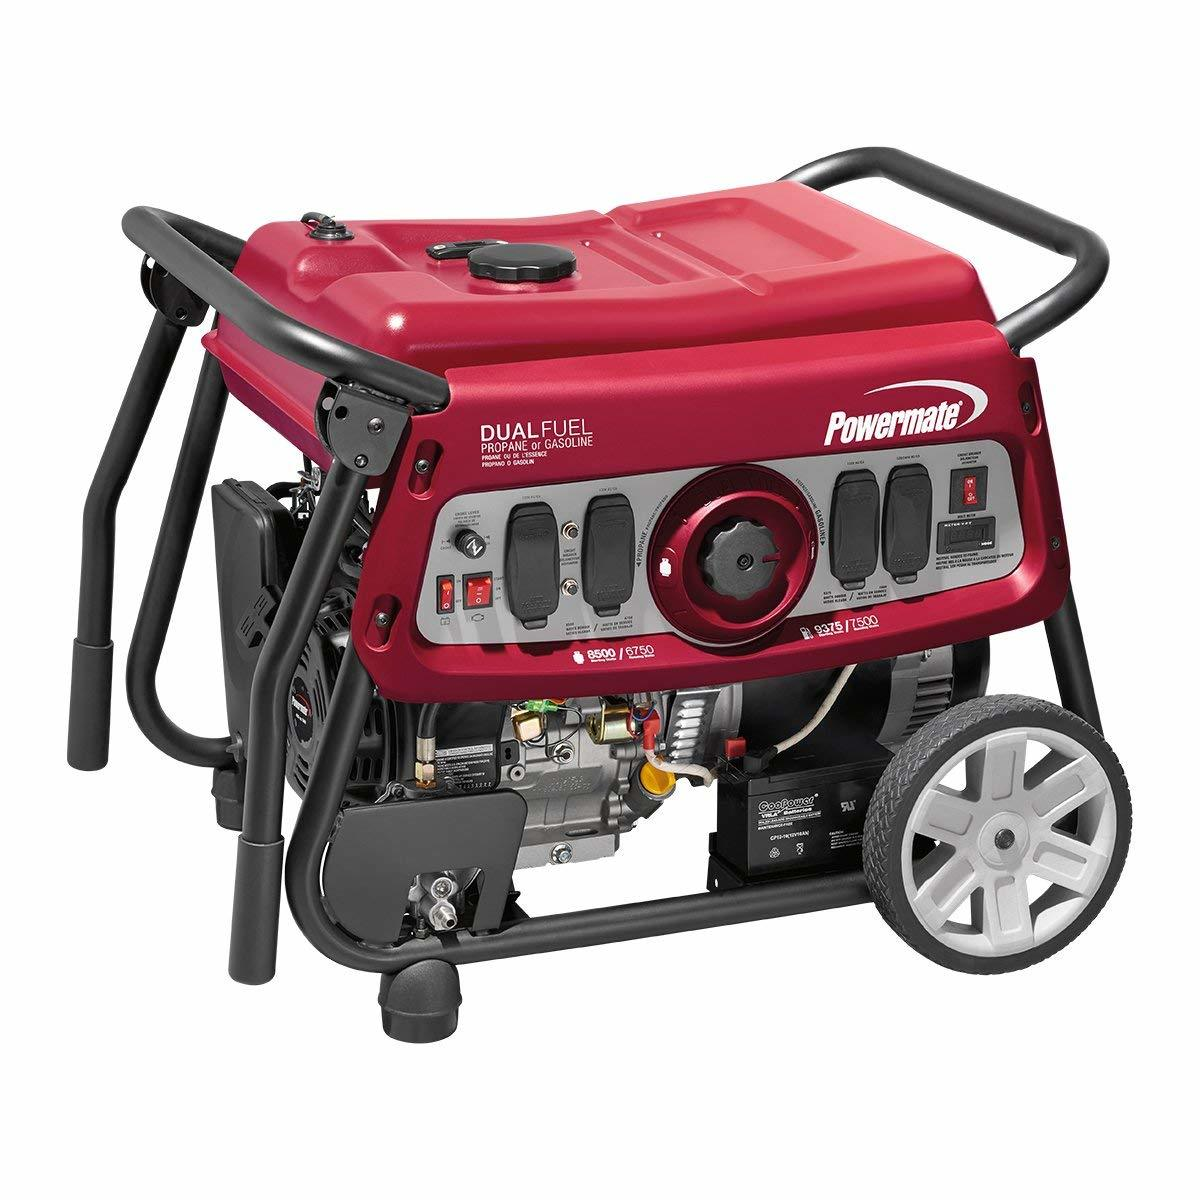 Powermate 6958 DF7500E 7500 Watt DUAL FUEL Portable Generator